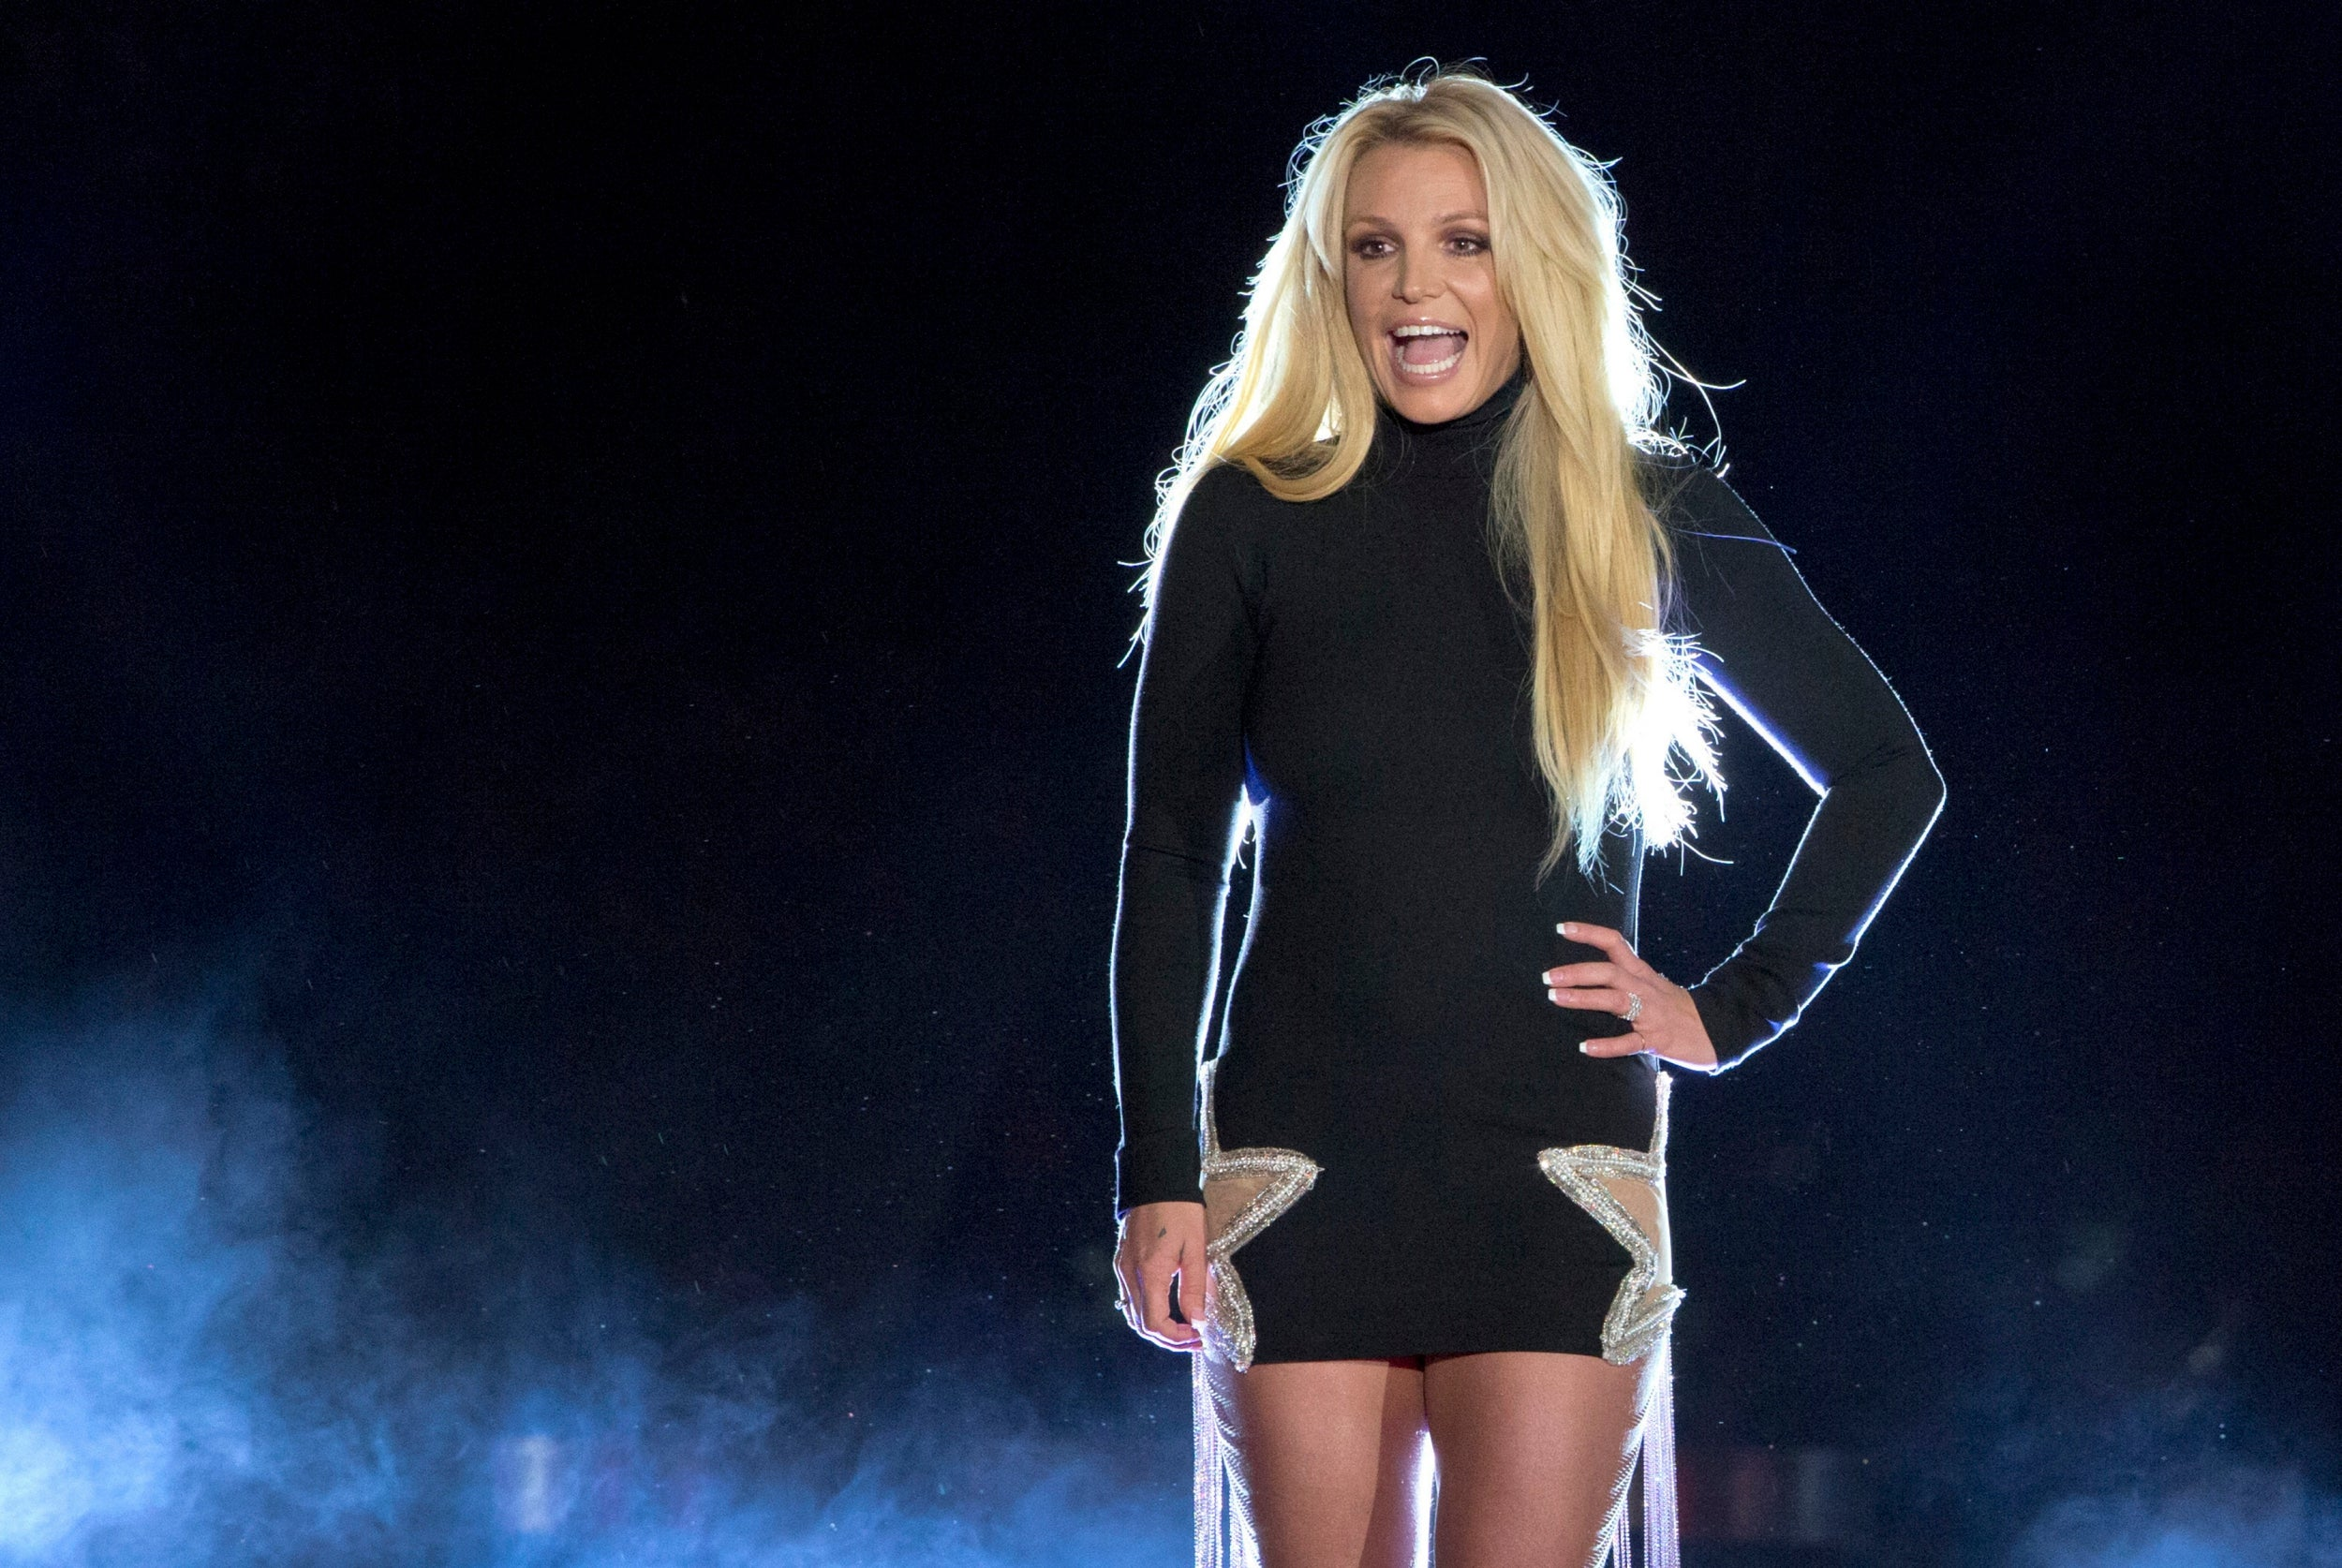 Britney Spears fan experience The Zone shares name with popular LA sex club